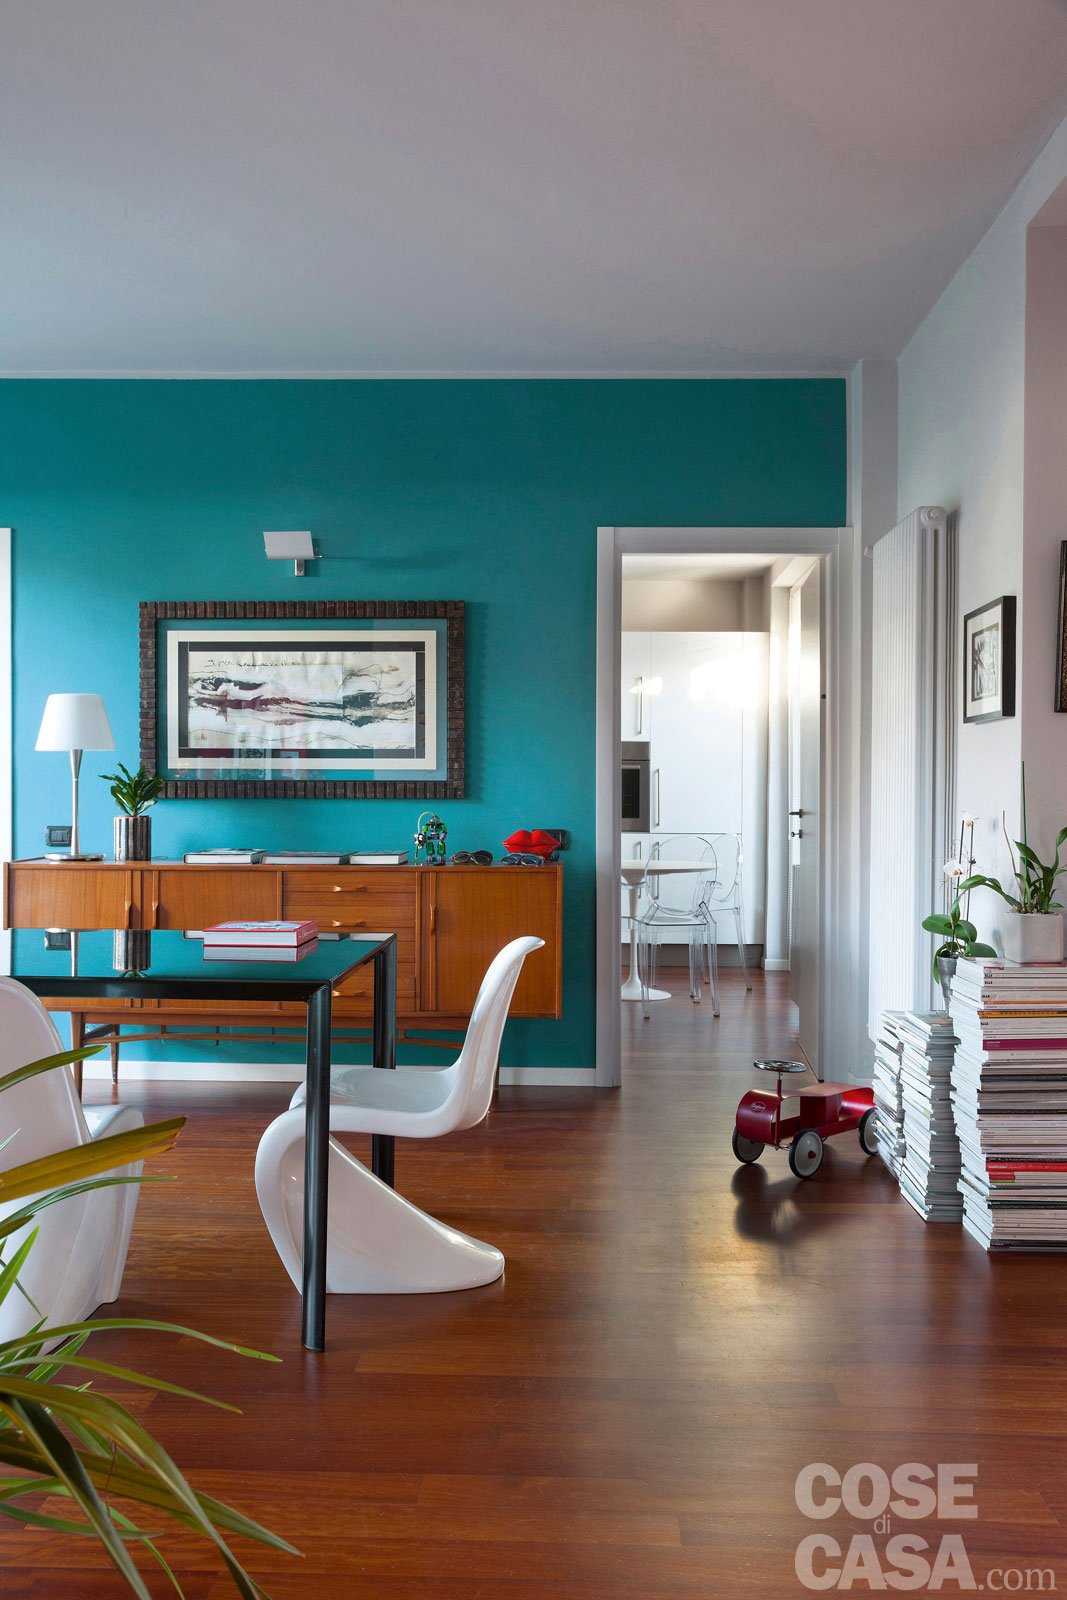 Idee per colorare le pareti interne di casa elegant - Colorare casa interni ...